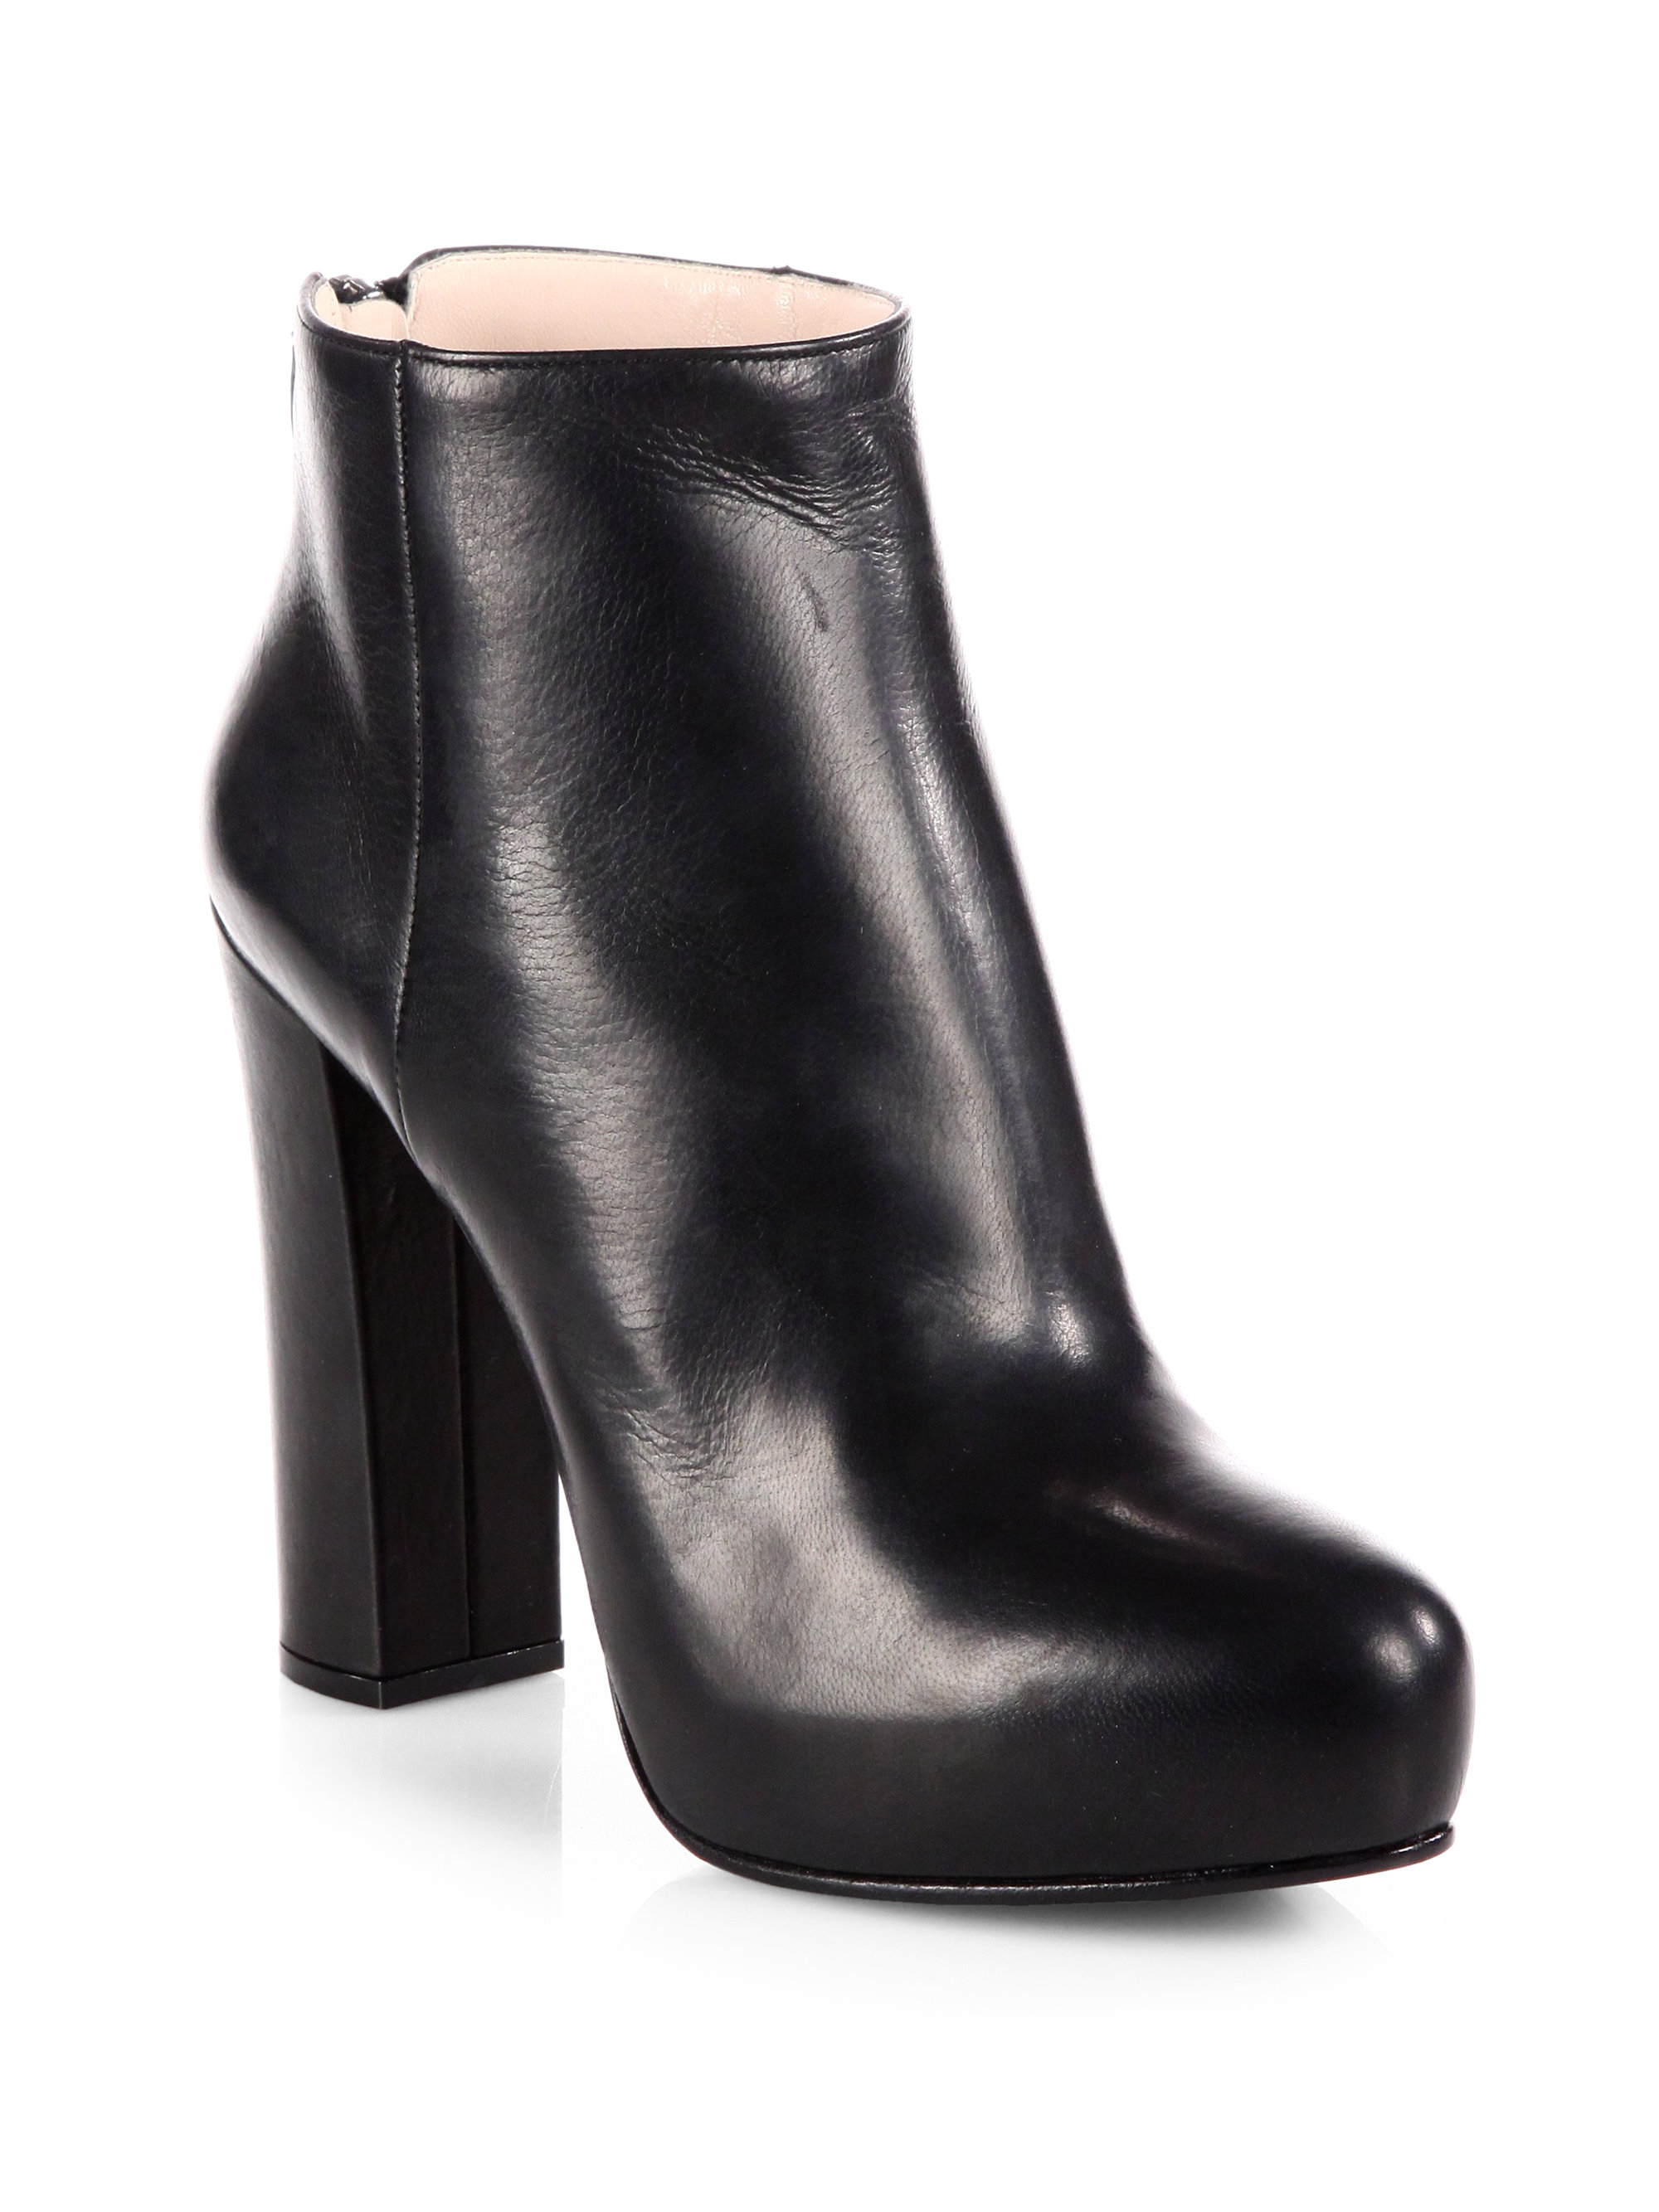 Prada Leather Platform Ankle Boots in Black | Lyst